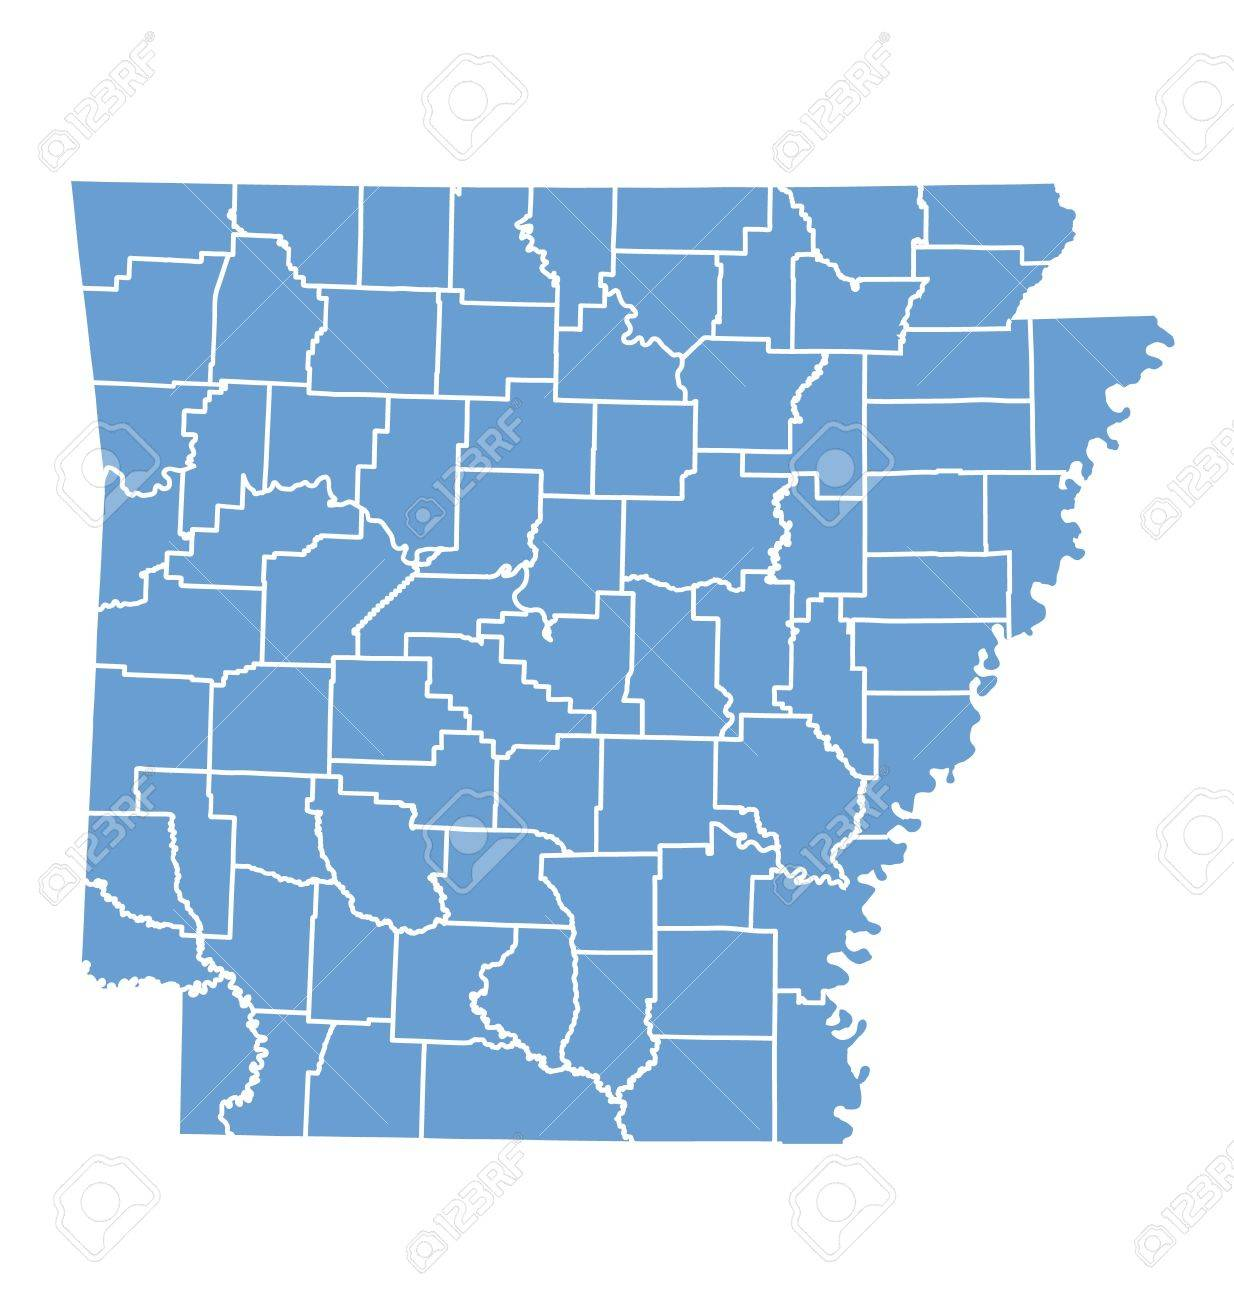 State Map Of Arkansas By Counties Royalty Free Cliparts Vectors - Map of arkansas counties